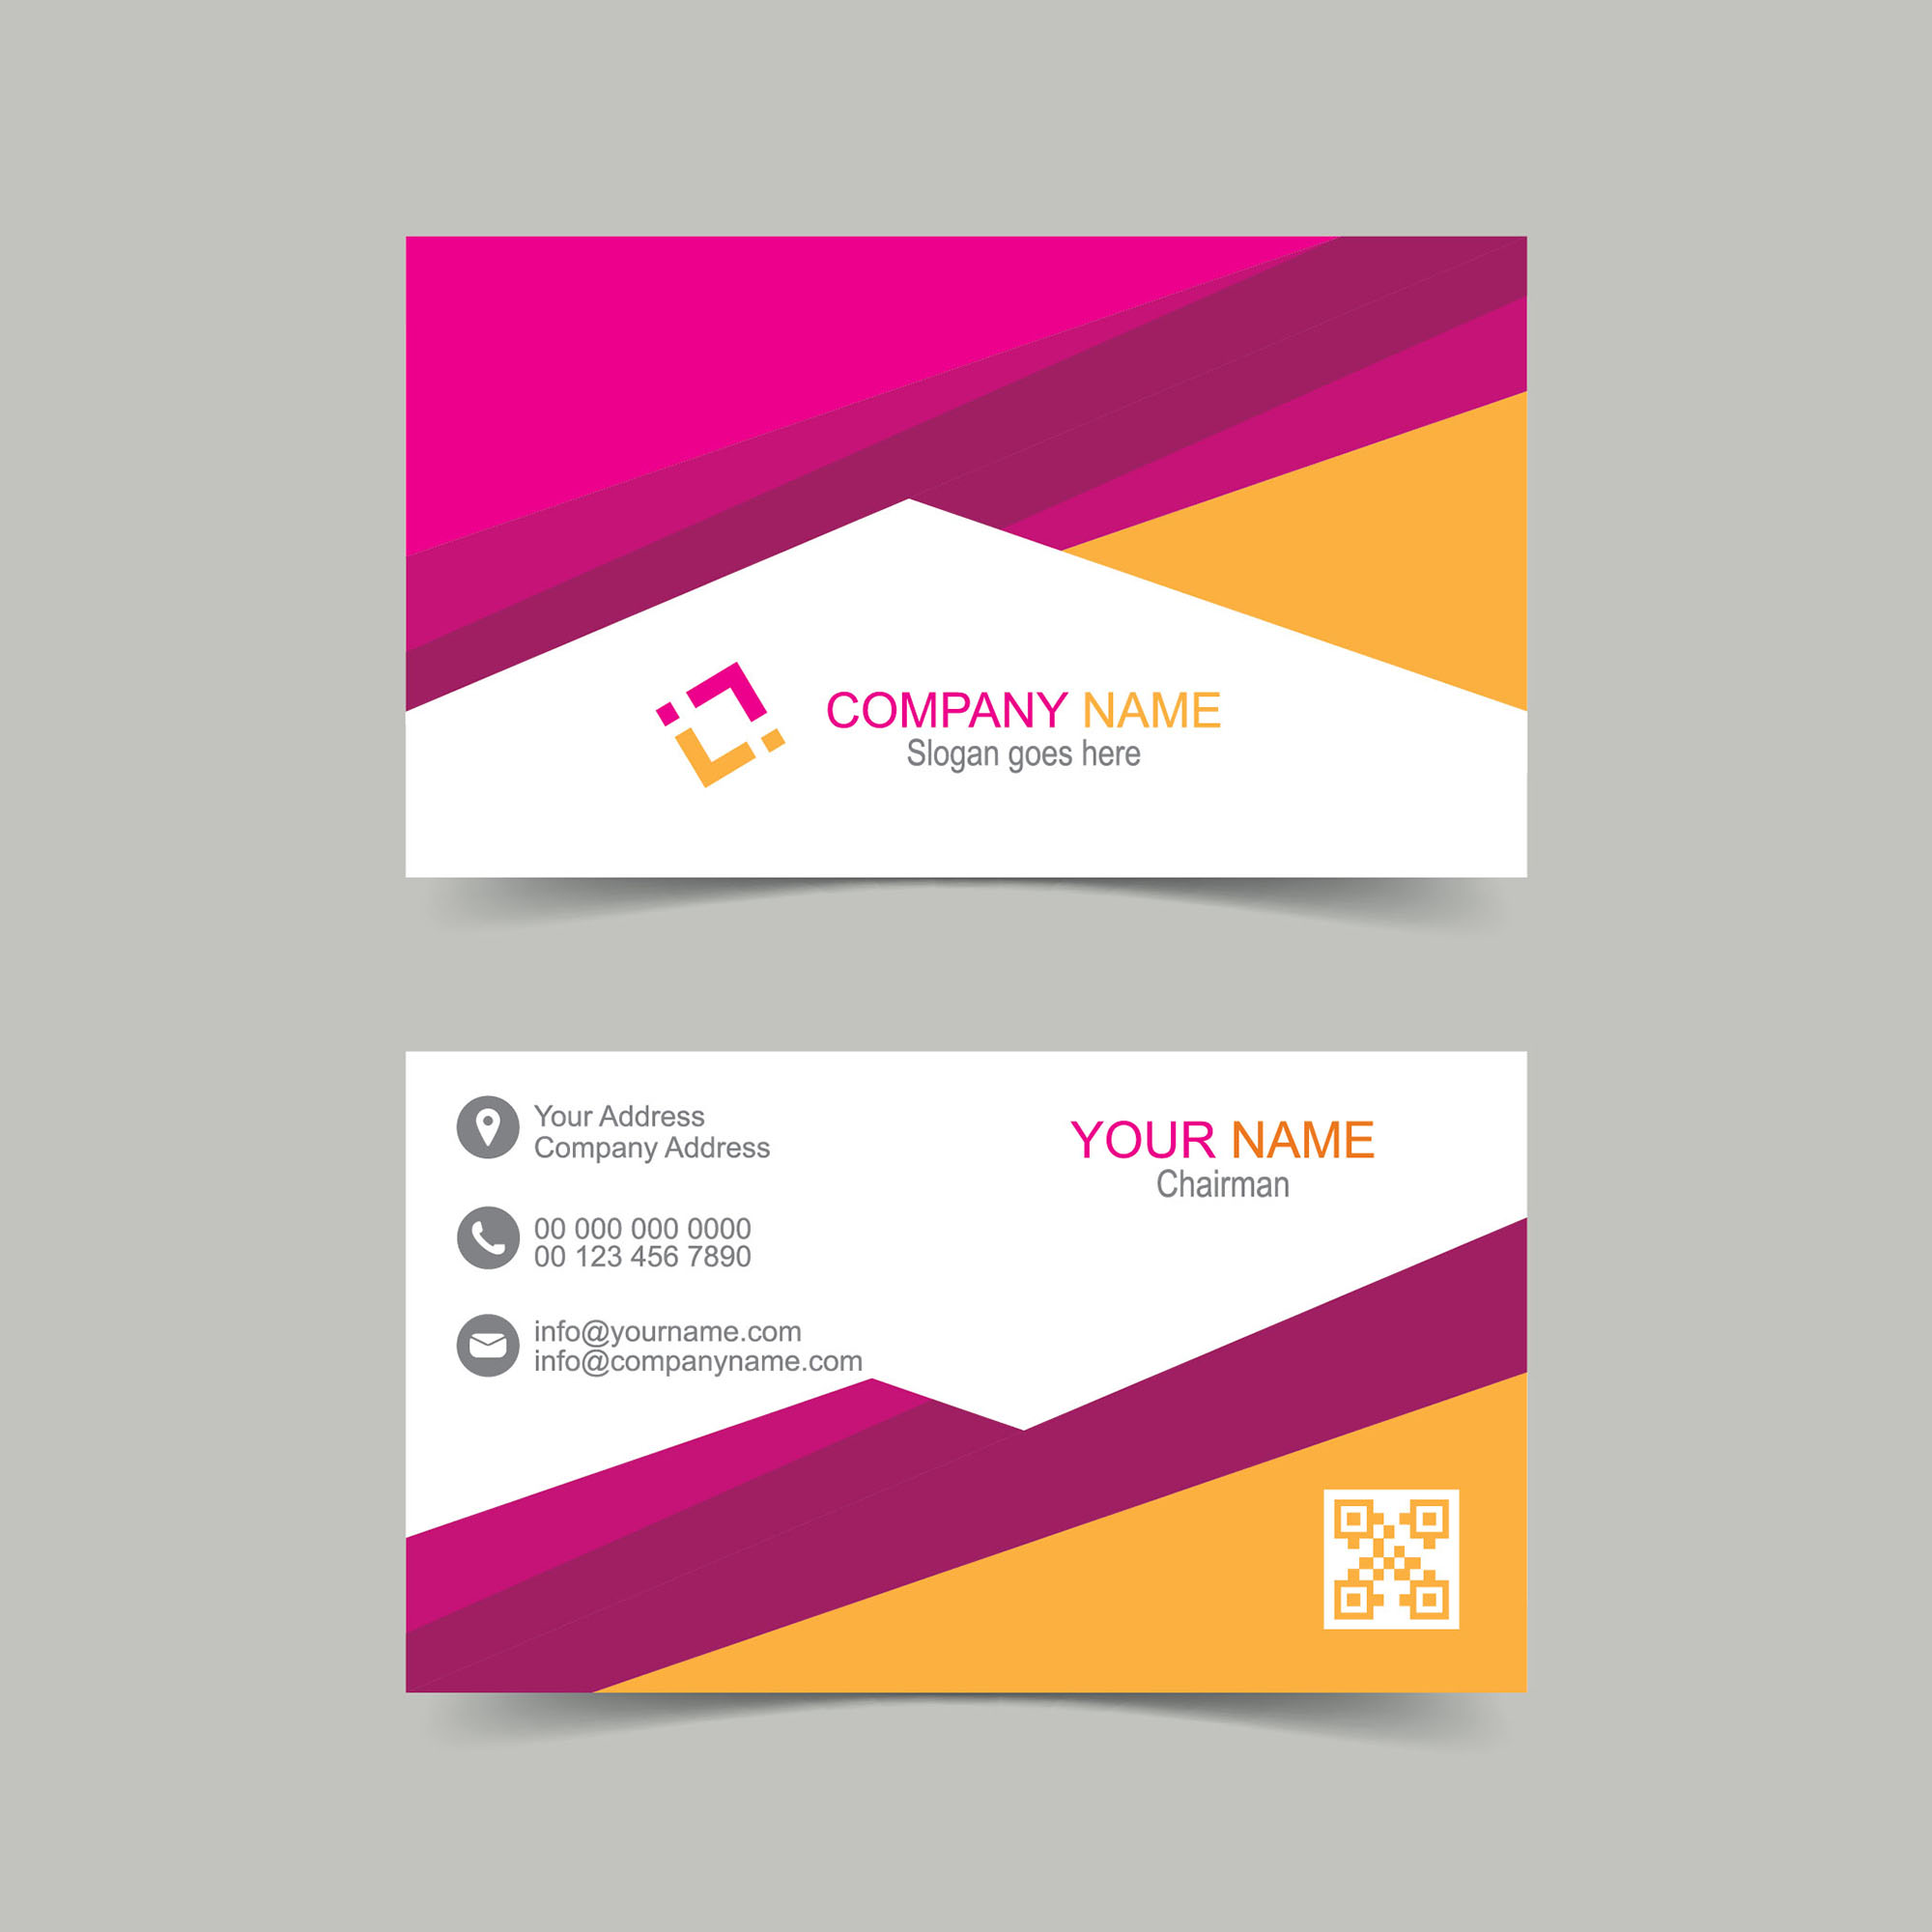 Vector business card design free download wisxi business card business cards business card design business card template design templates cheaphphosting